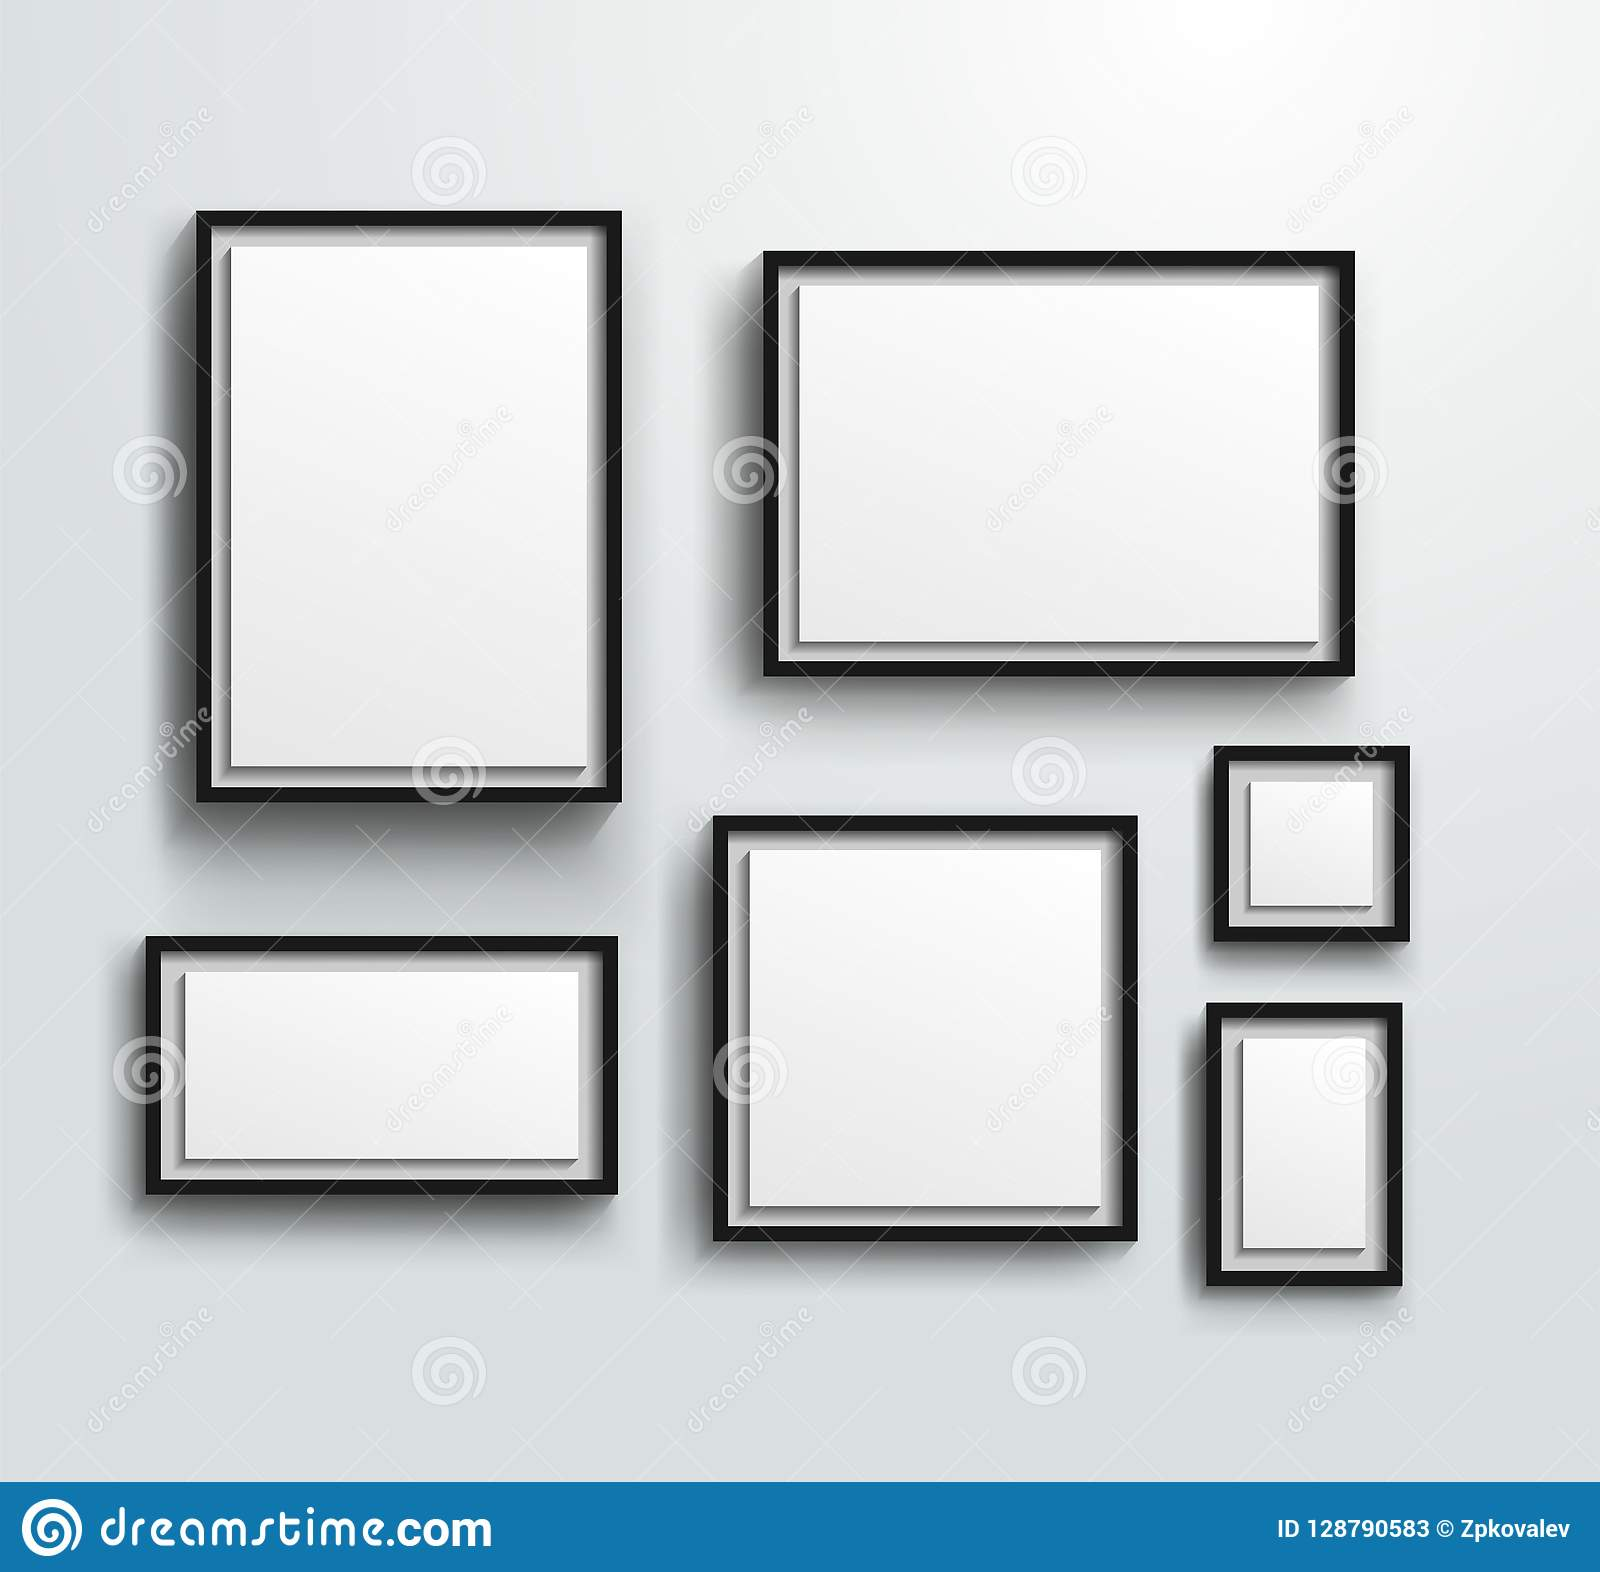 Blank Photo Frames On The Wall. Design For A Modern Interior ...